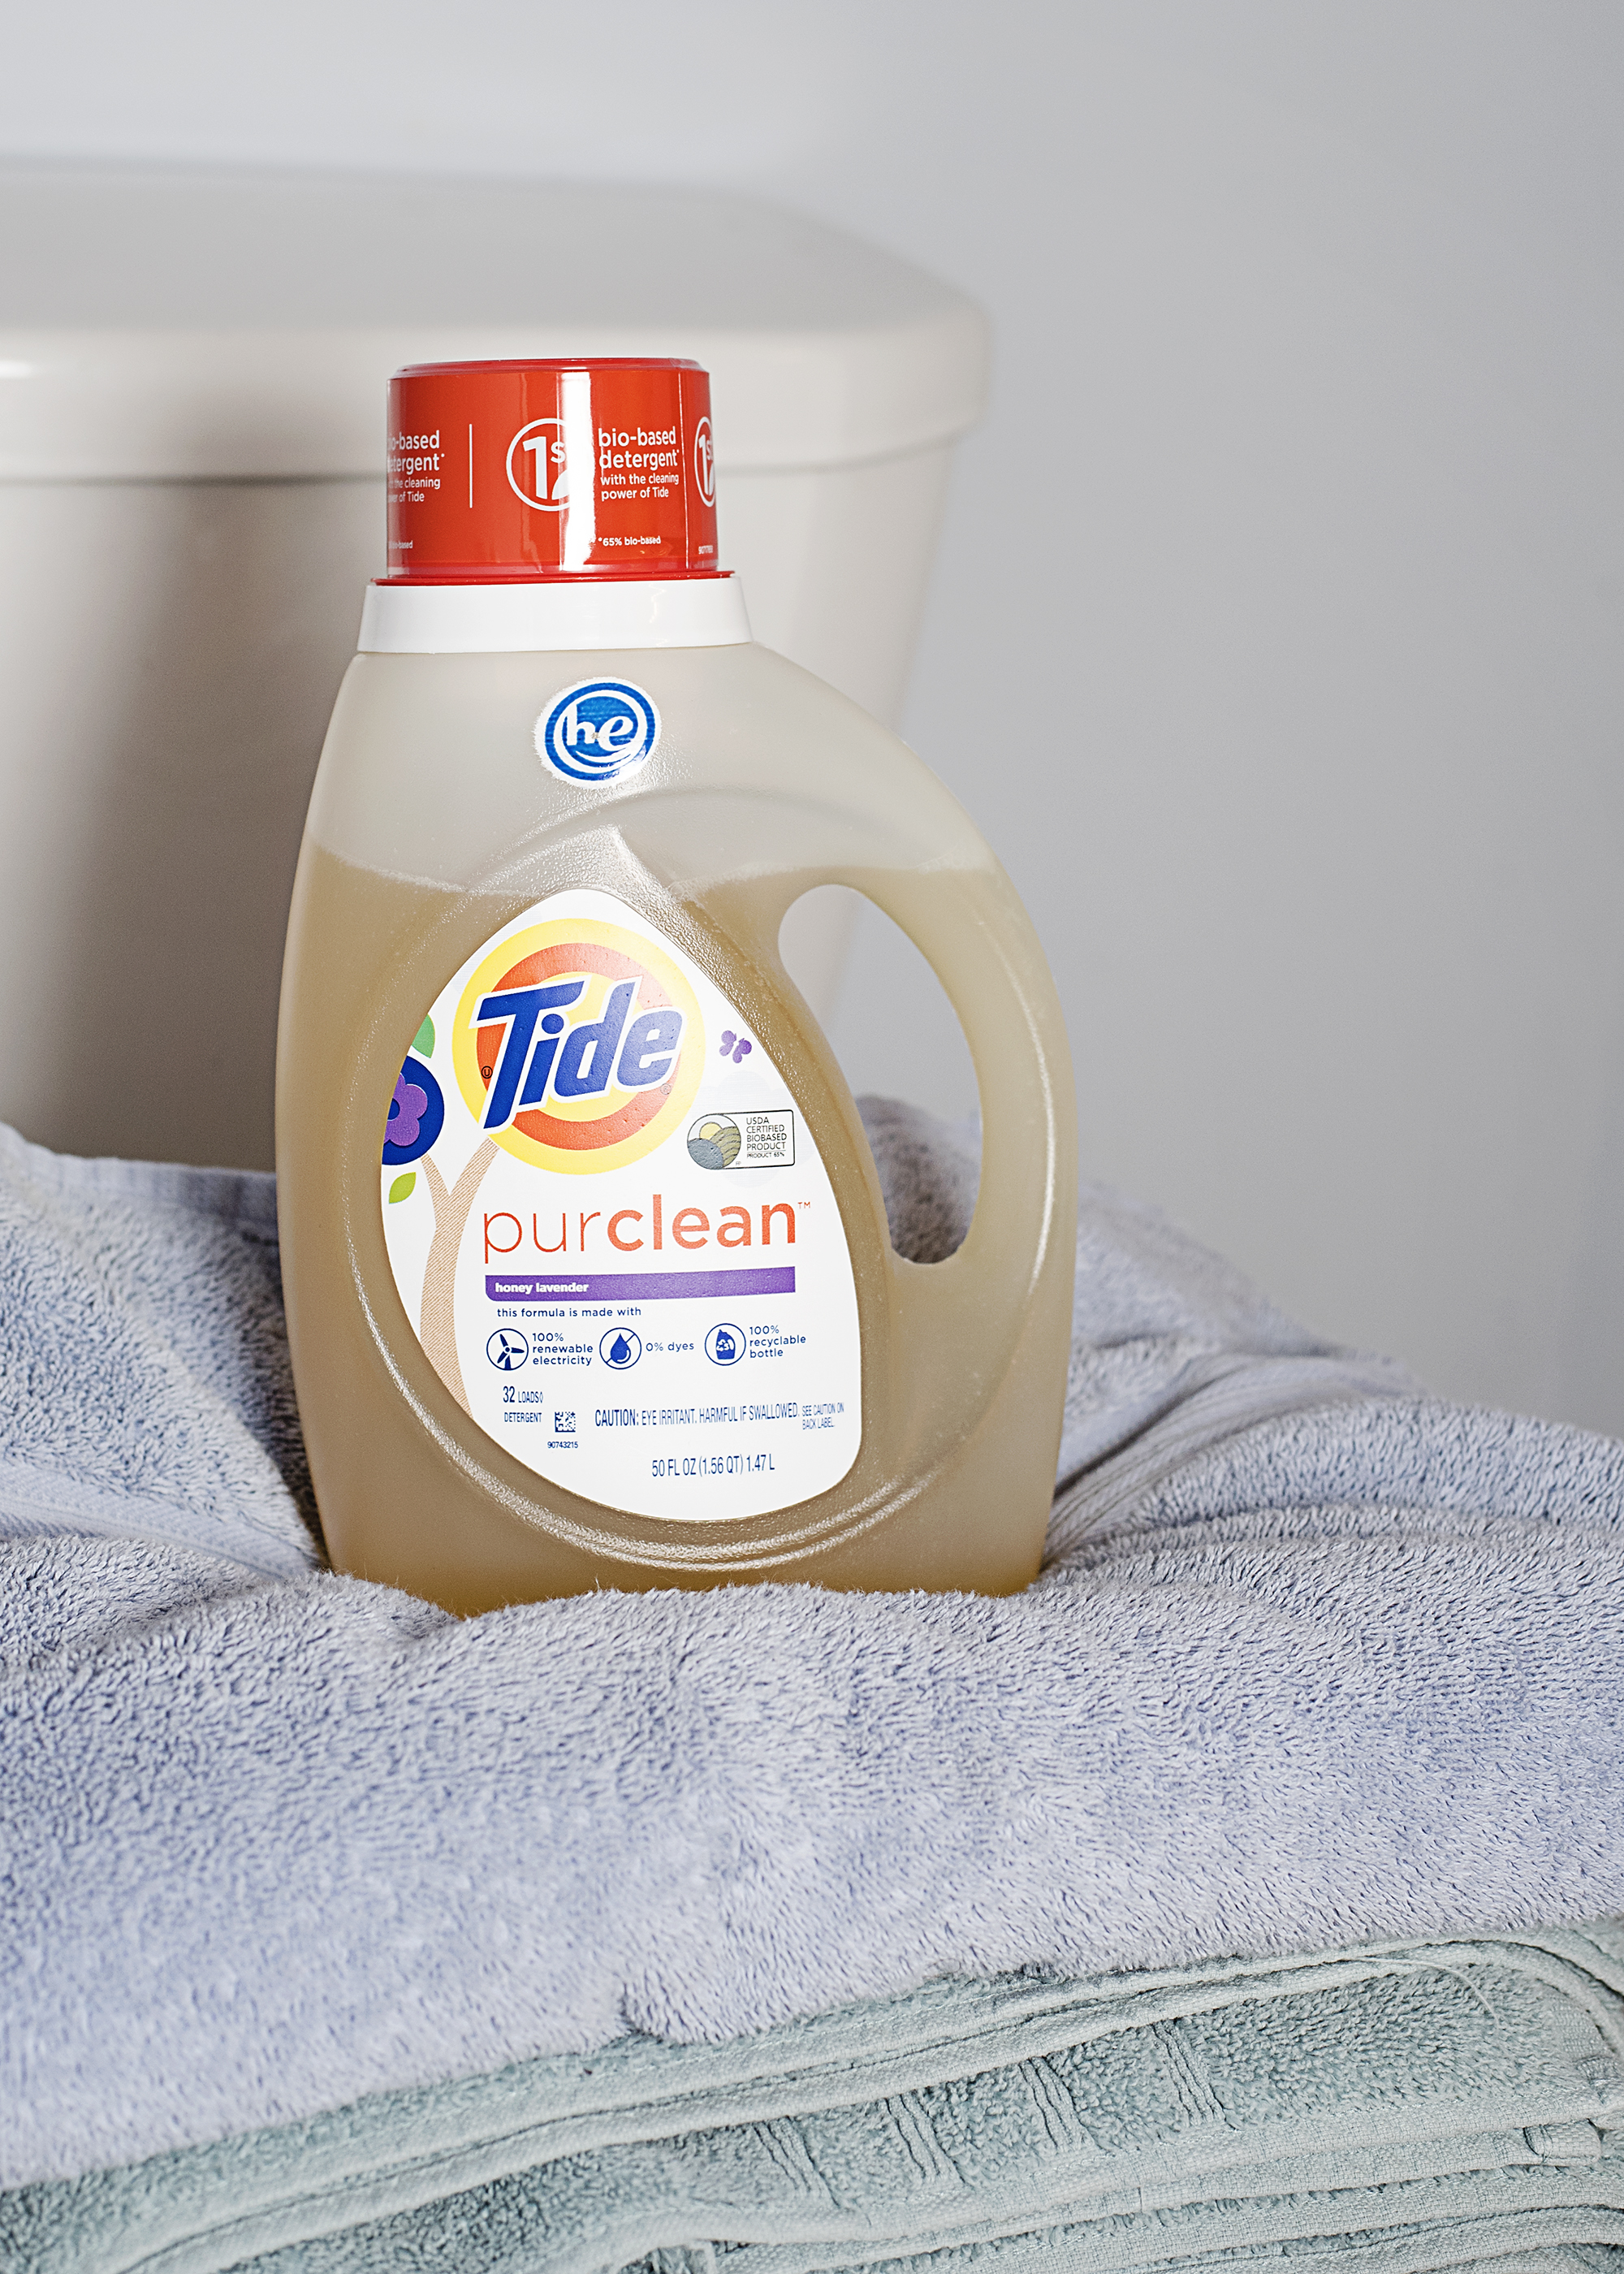 Taking Laundry to a Whole New Level with Tide purclean